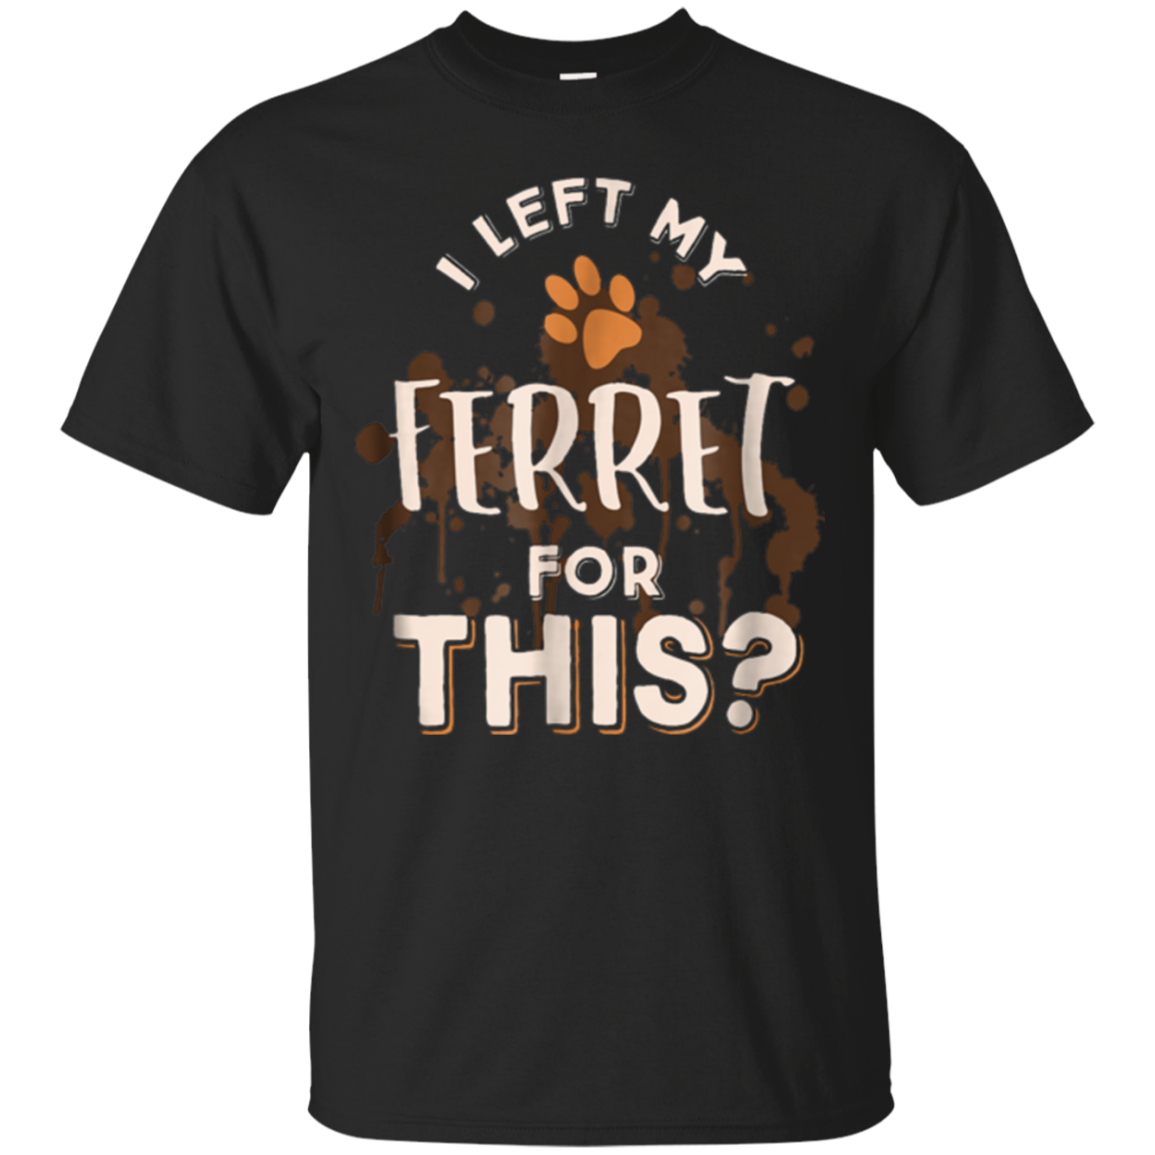 Ferret T-Shirt For Kids Women Men Mom Pet Lover Gift